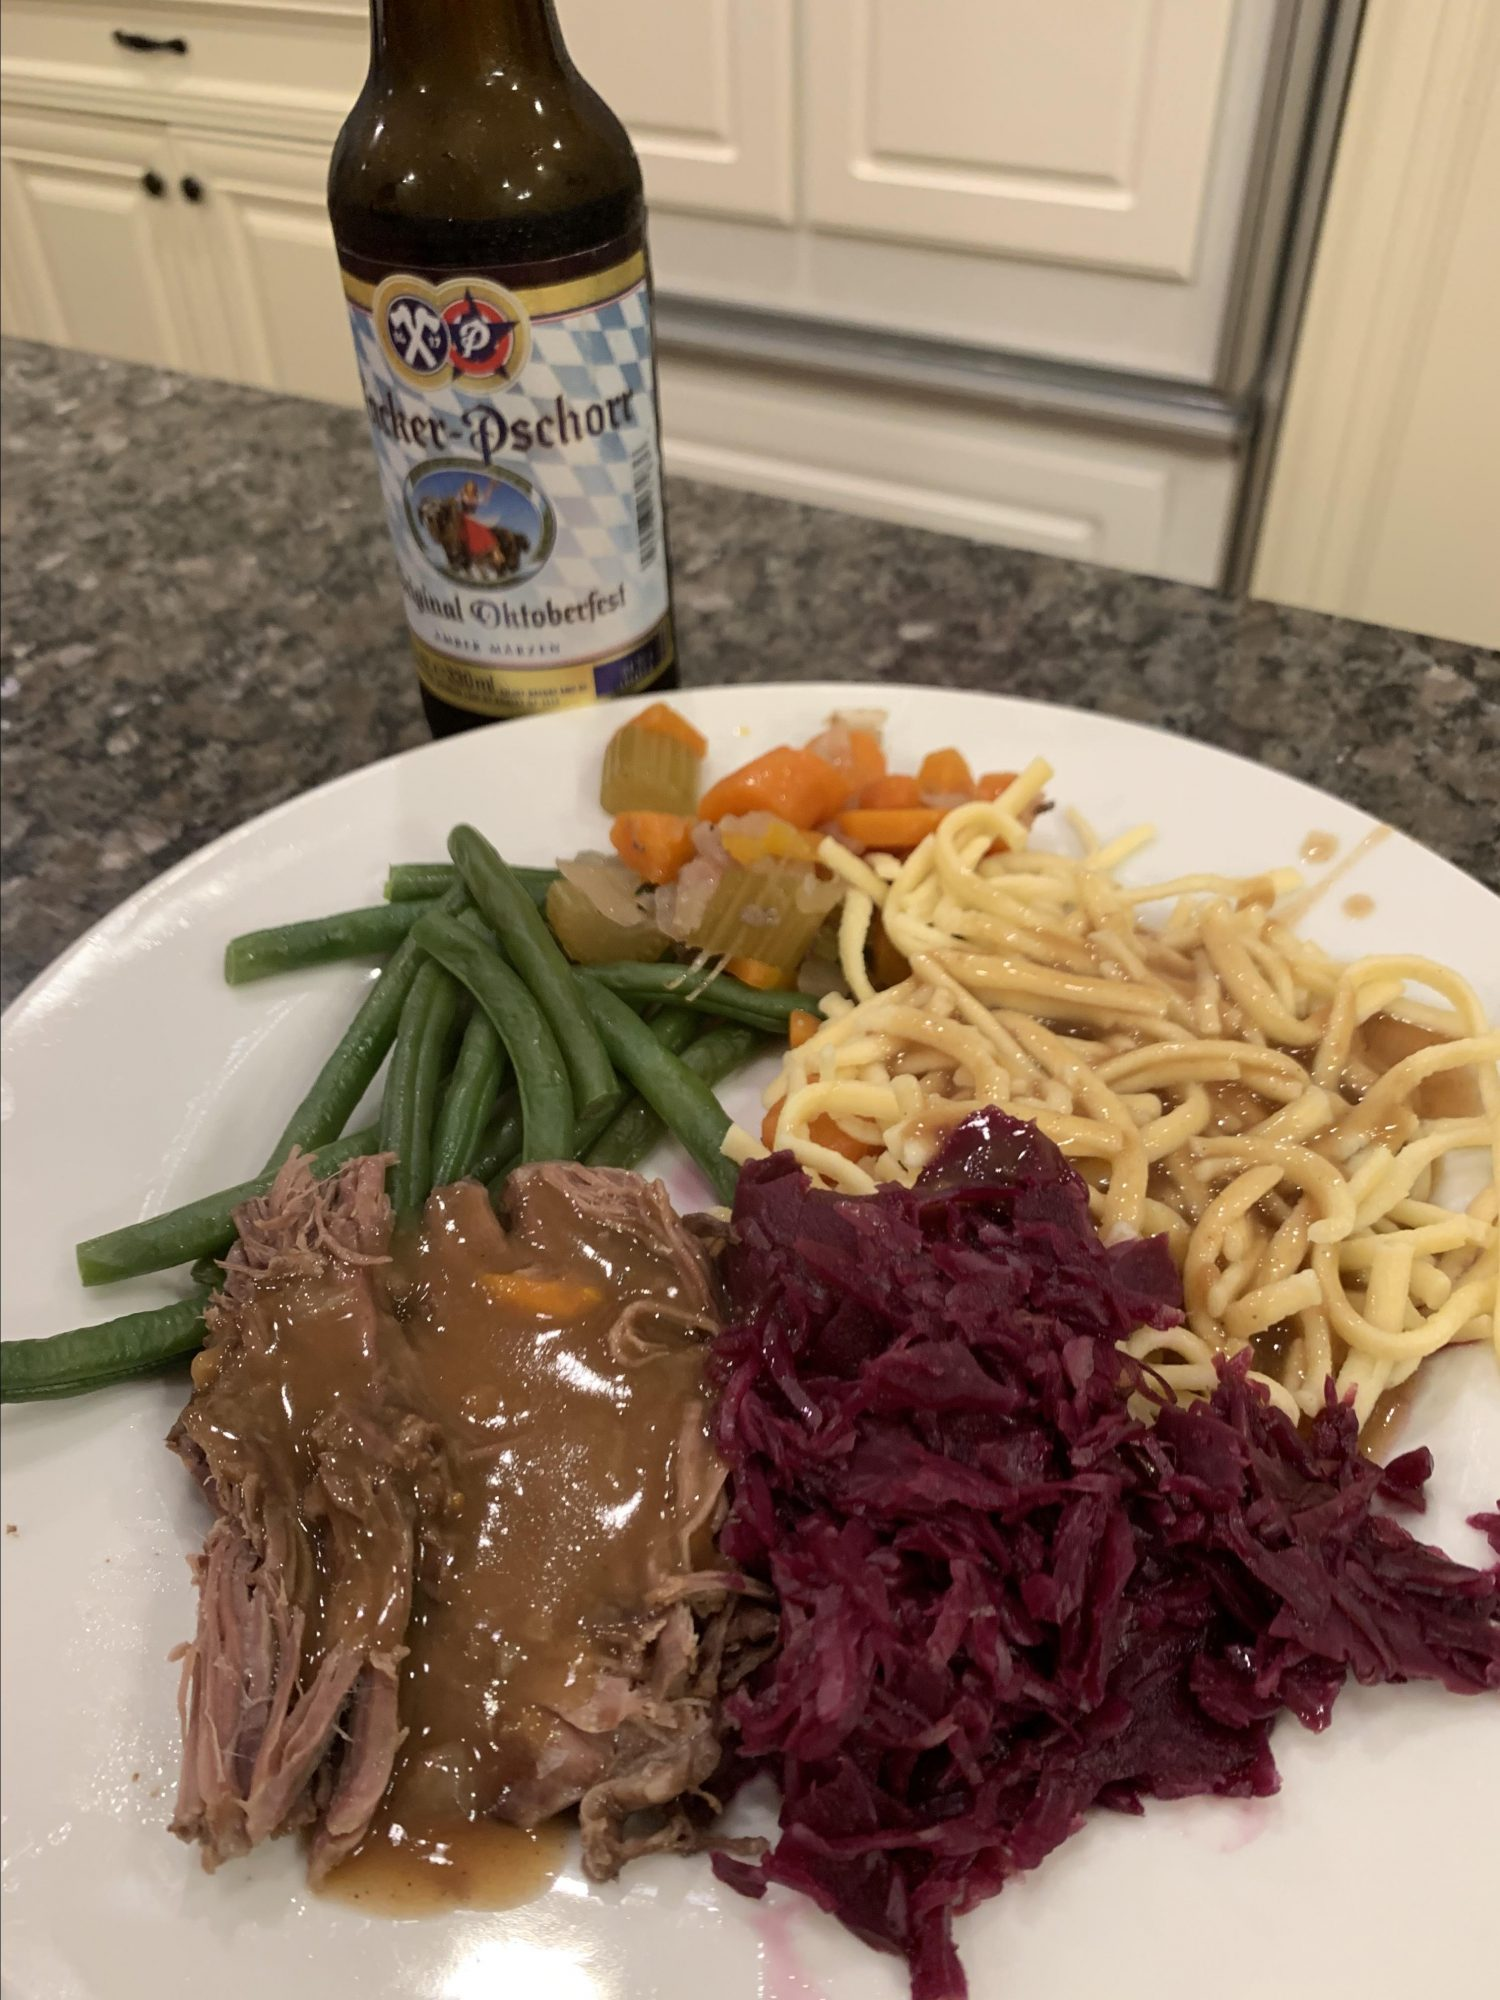 A German dinner with braised beef chuck, red cabbage, and egg noodles, accompanied by a bottle of Hacker-Pschorr beer